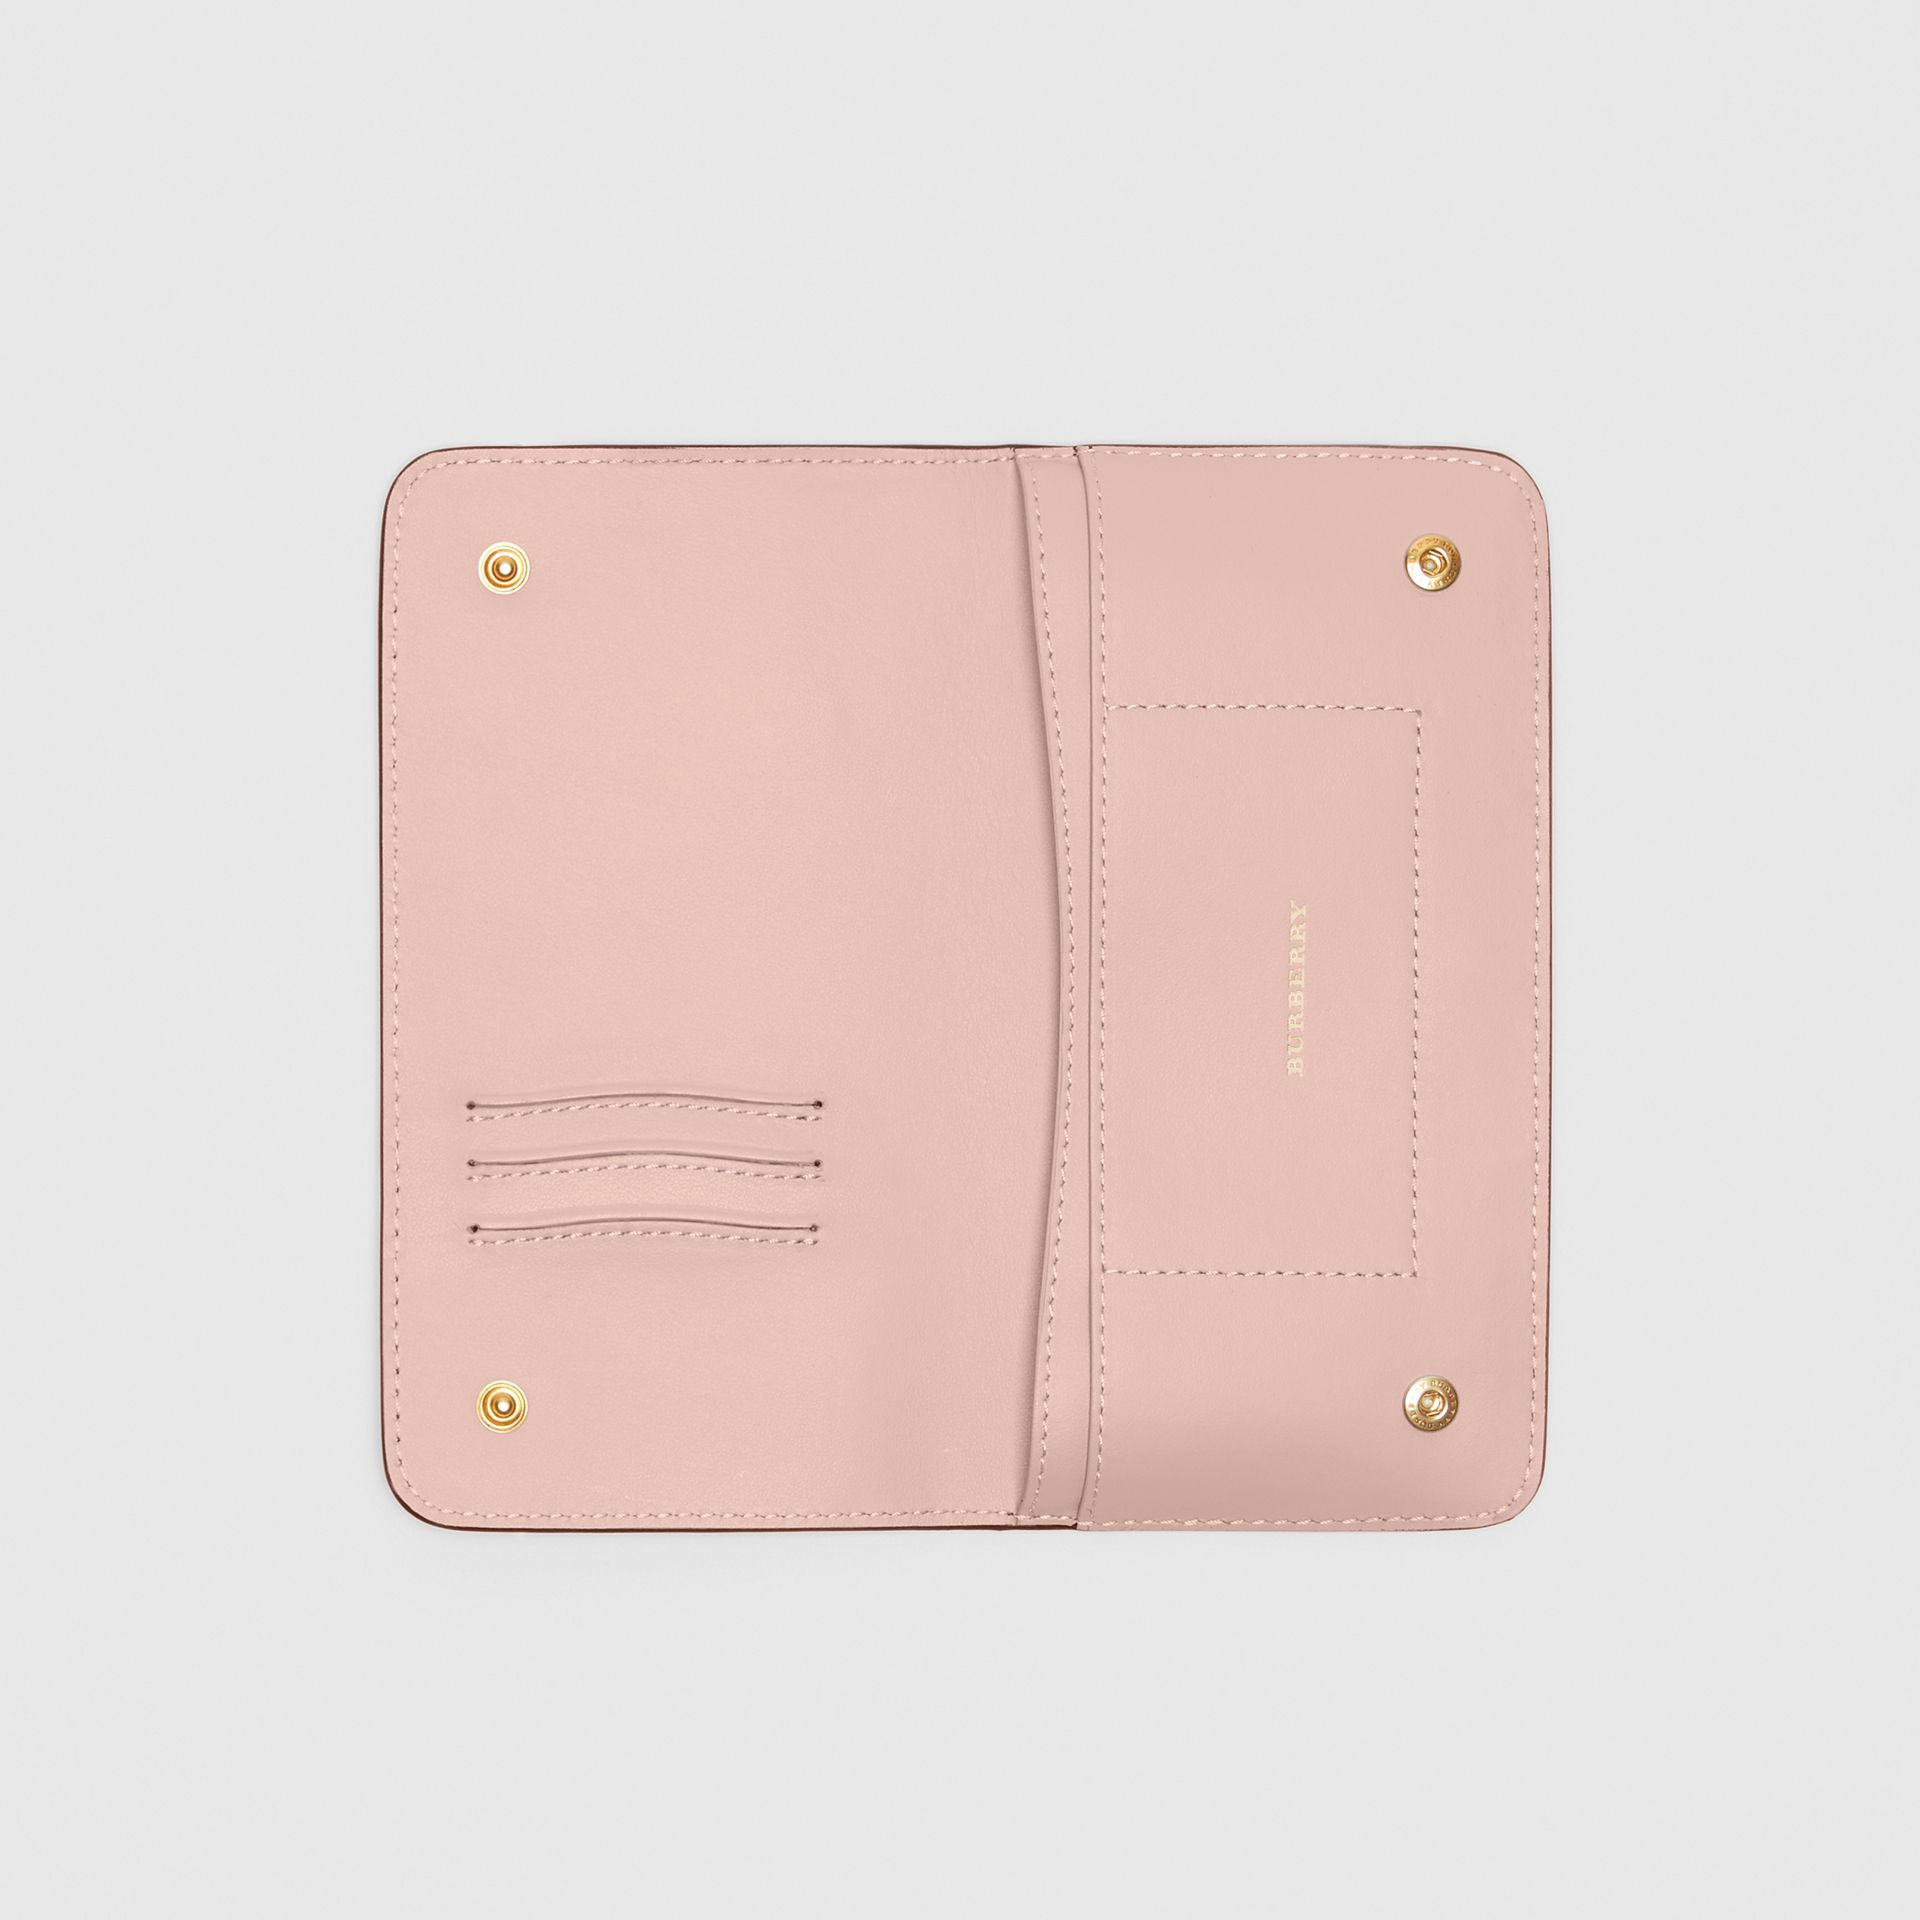 Leather Phone Wallet in Ash Rose - Women | Burberry United States - gallery image 2